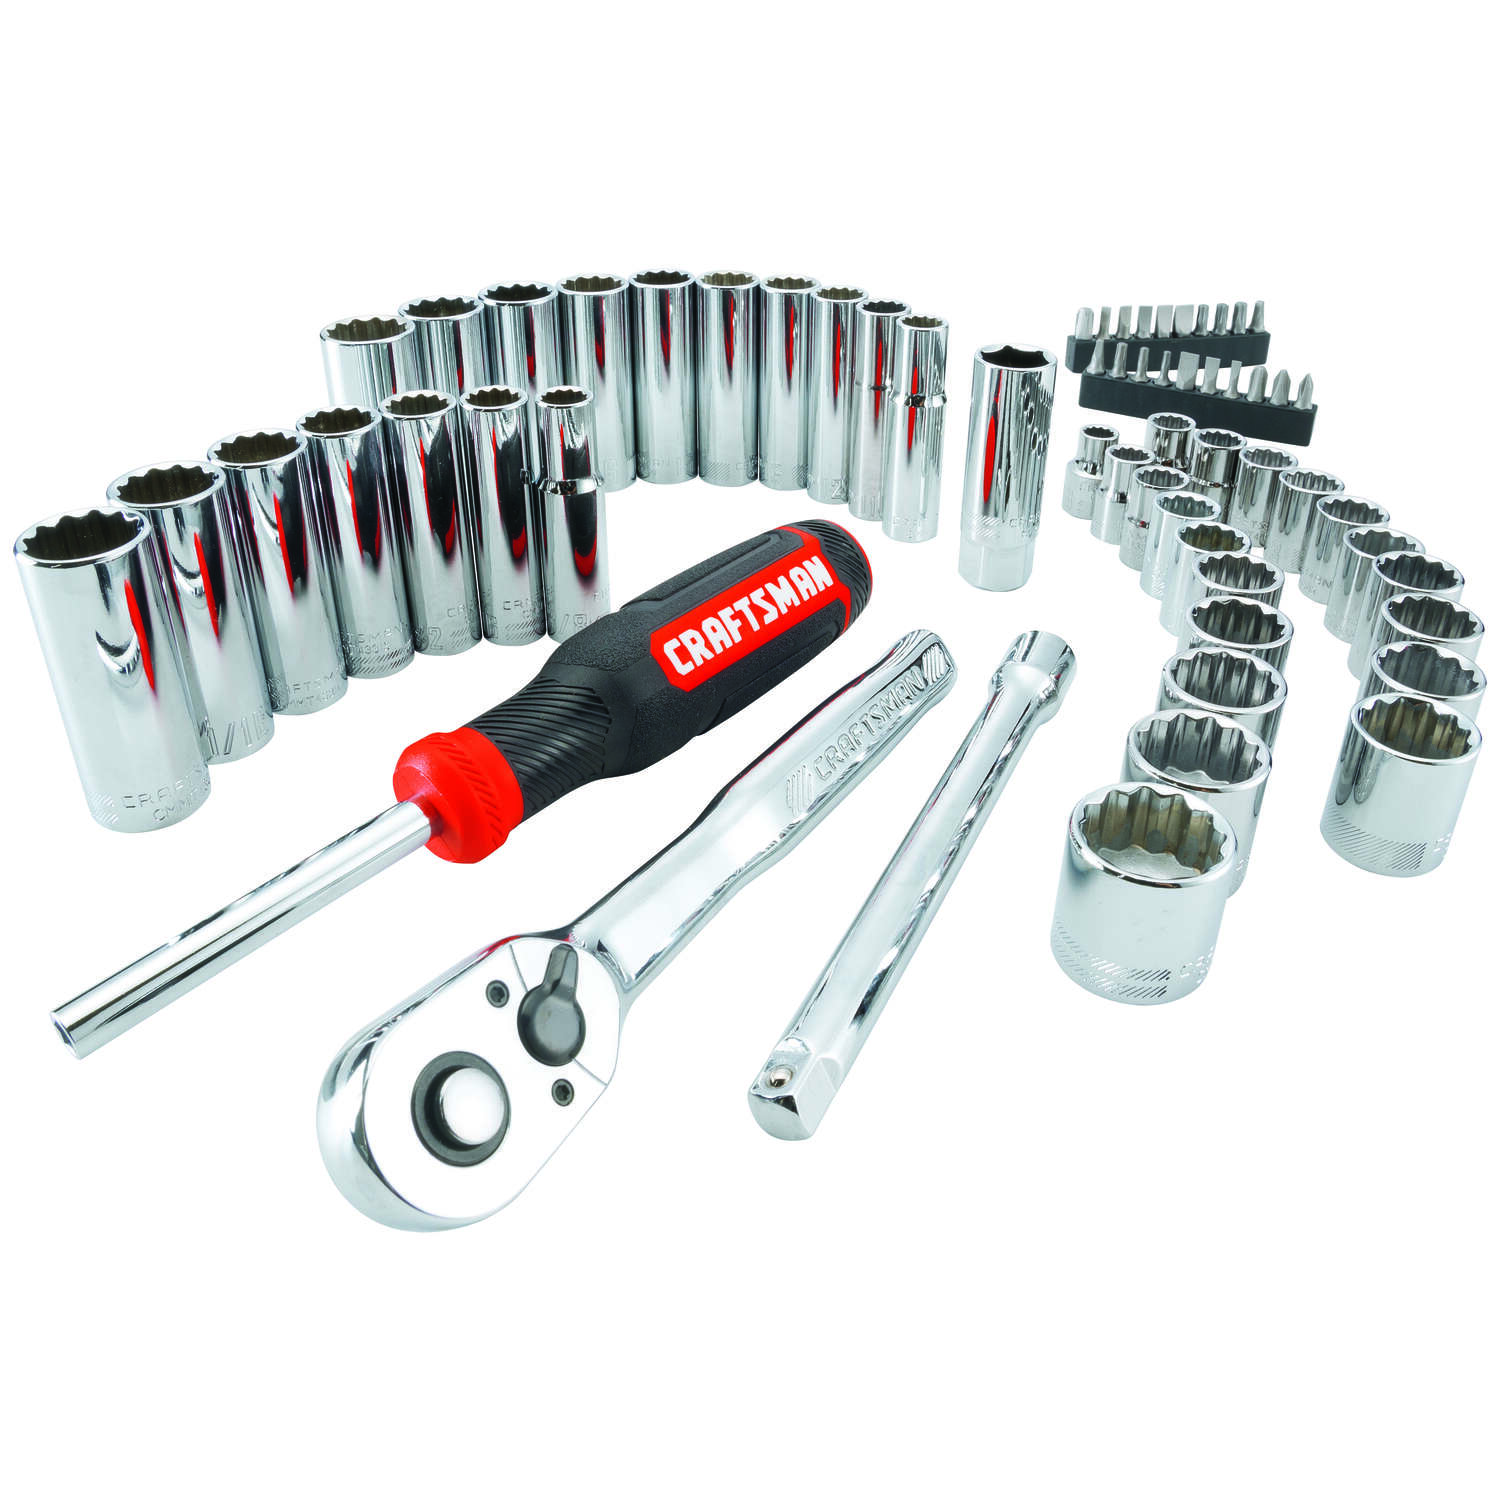 Craftsman  3/8 in. drive  Metric and SAE  12 Point Mechanic's Tool Set  61 pc.